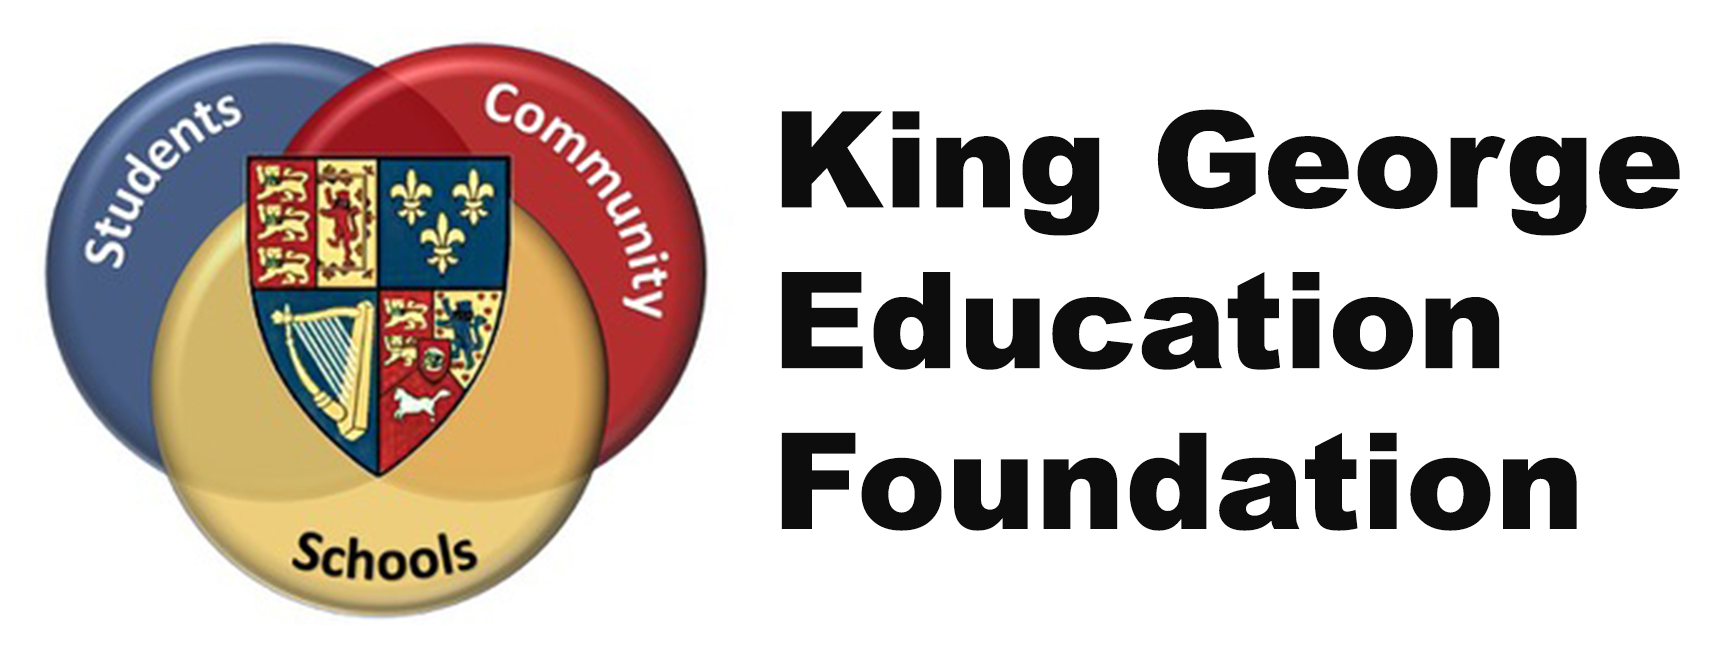 King George Education Foundation